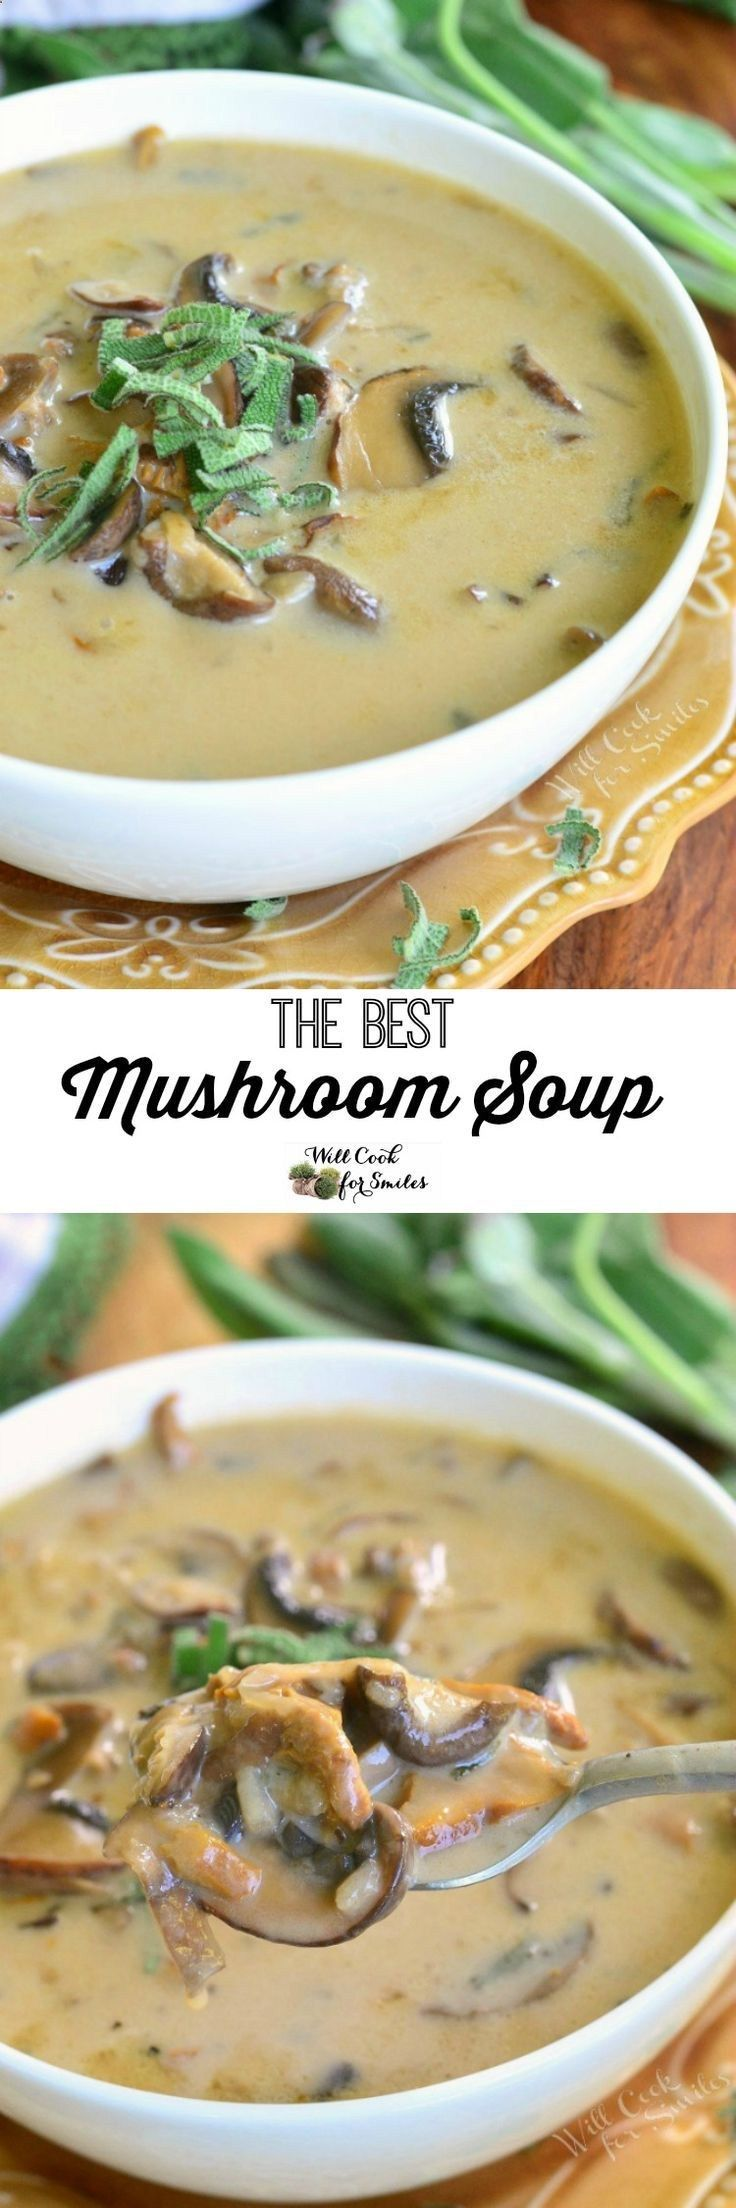 The BEST Mushroom Soup. This creamy soup is made with three types of mushrooms and fresh sage. Its SIMPLE, hearty and guaranteed to please every mushroom lover.